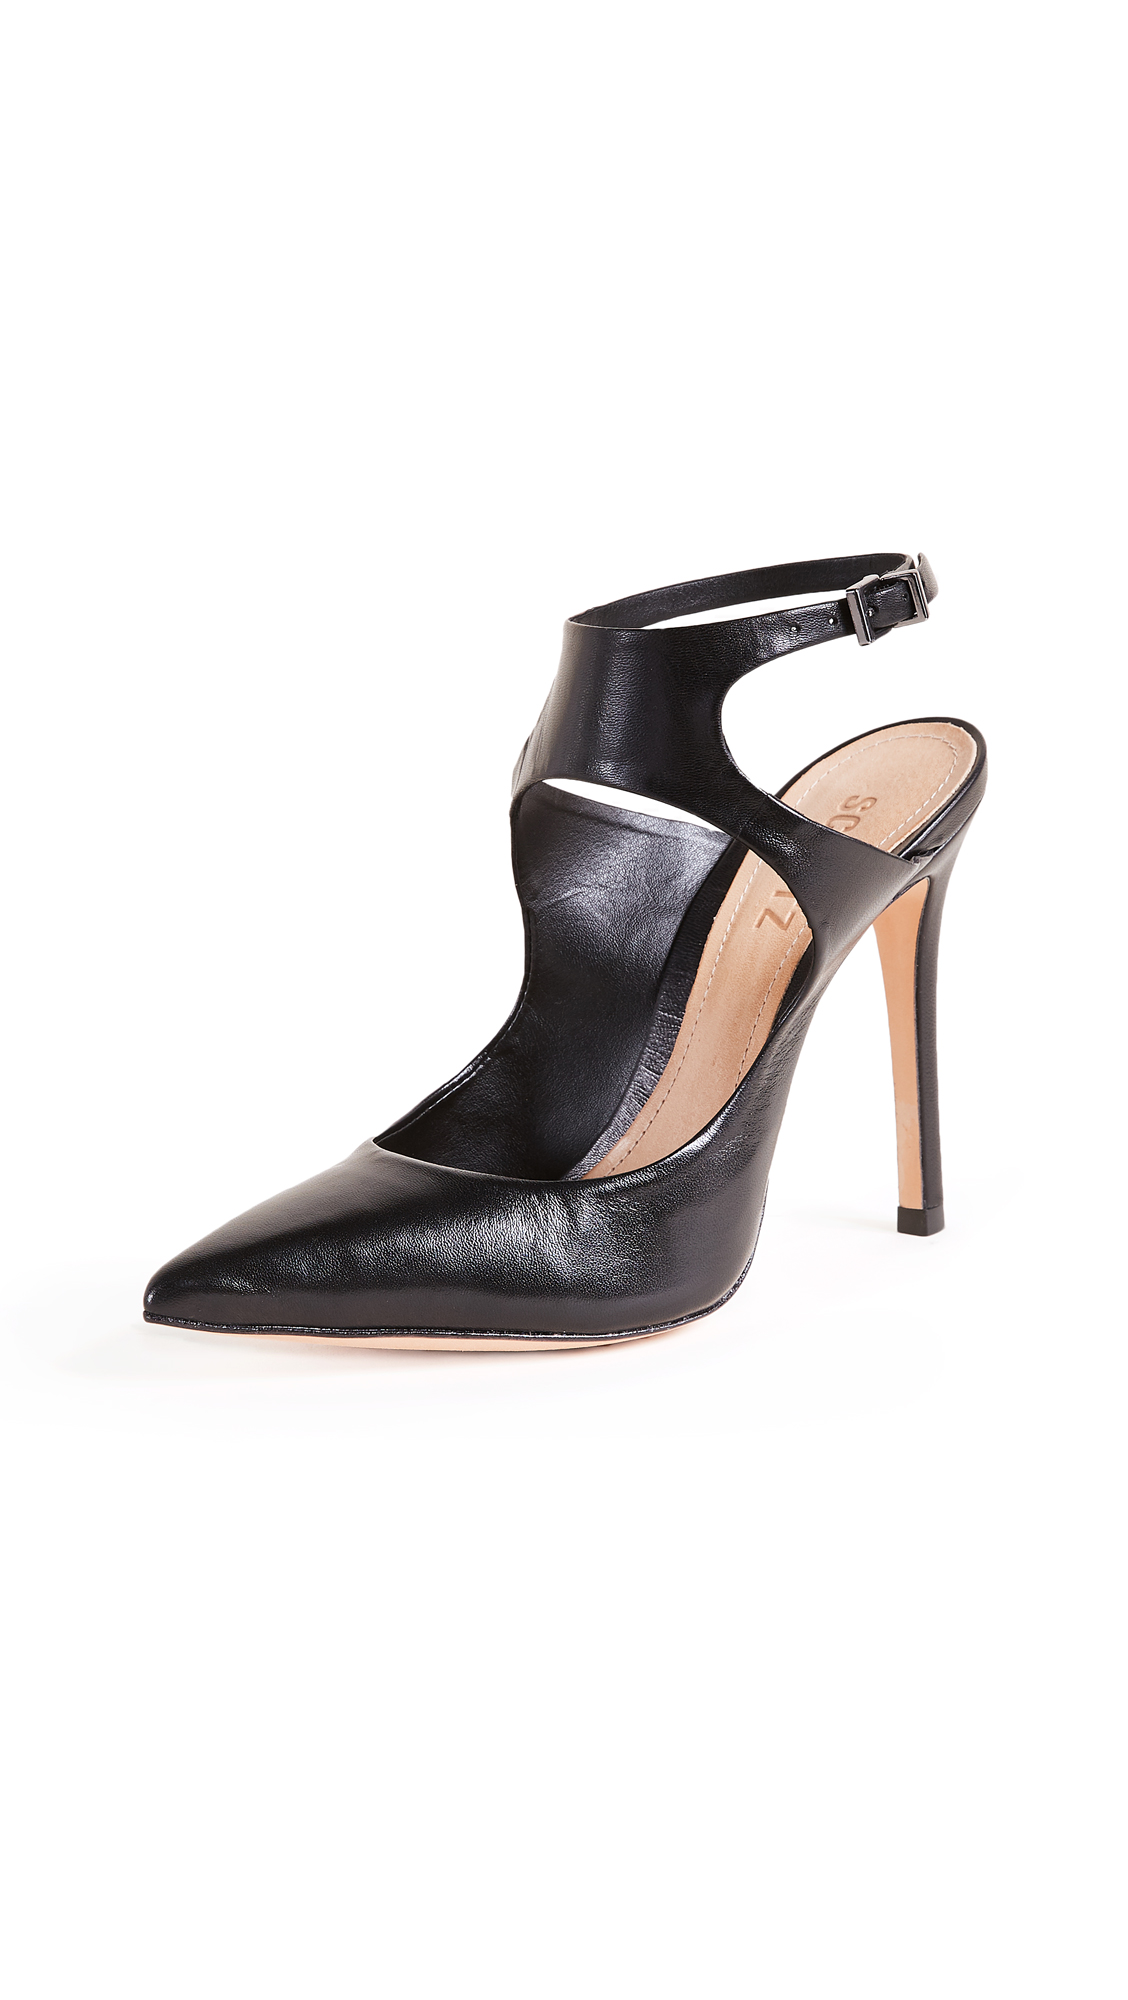 Schutz Lucina Ankle Strap Pumps - Black